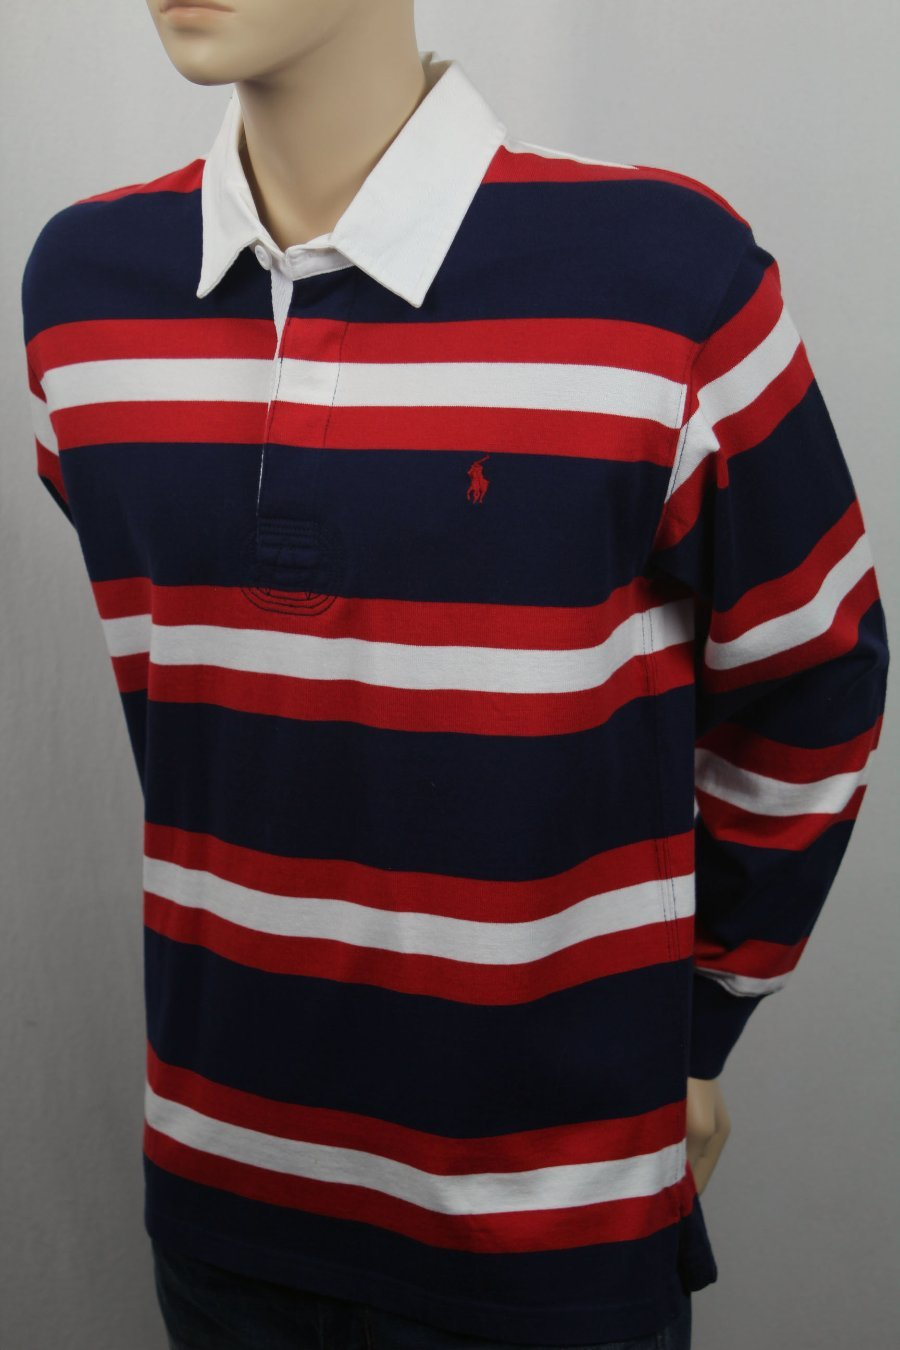 Details about Ralph lauren rugby women's polo shirt, rednavywhite size smalll